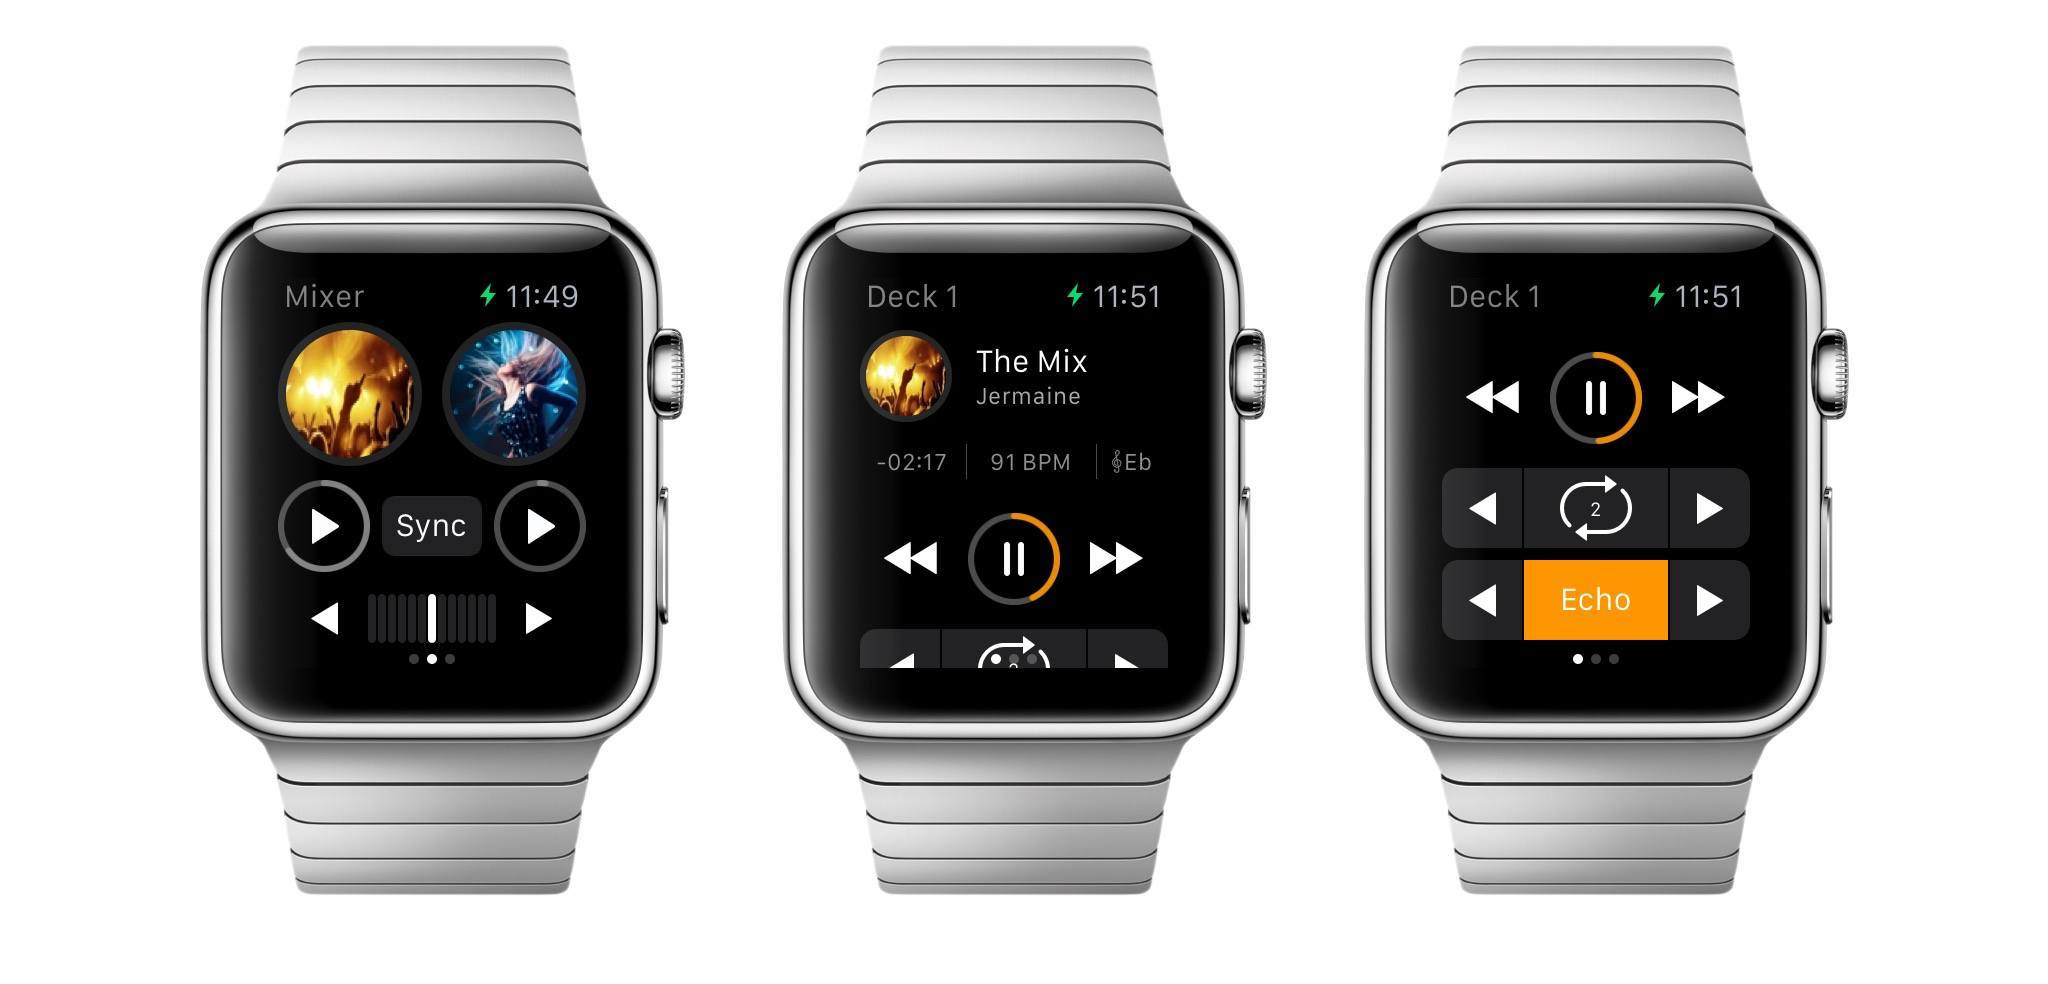 djay Comes to Apple Watch, Mac App Gains Video Mixing